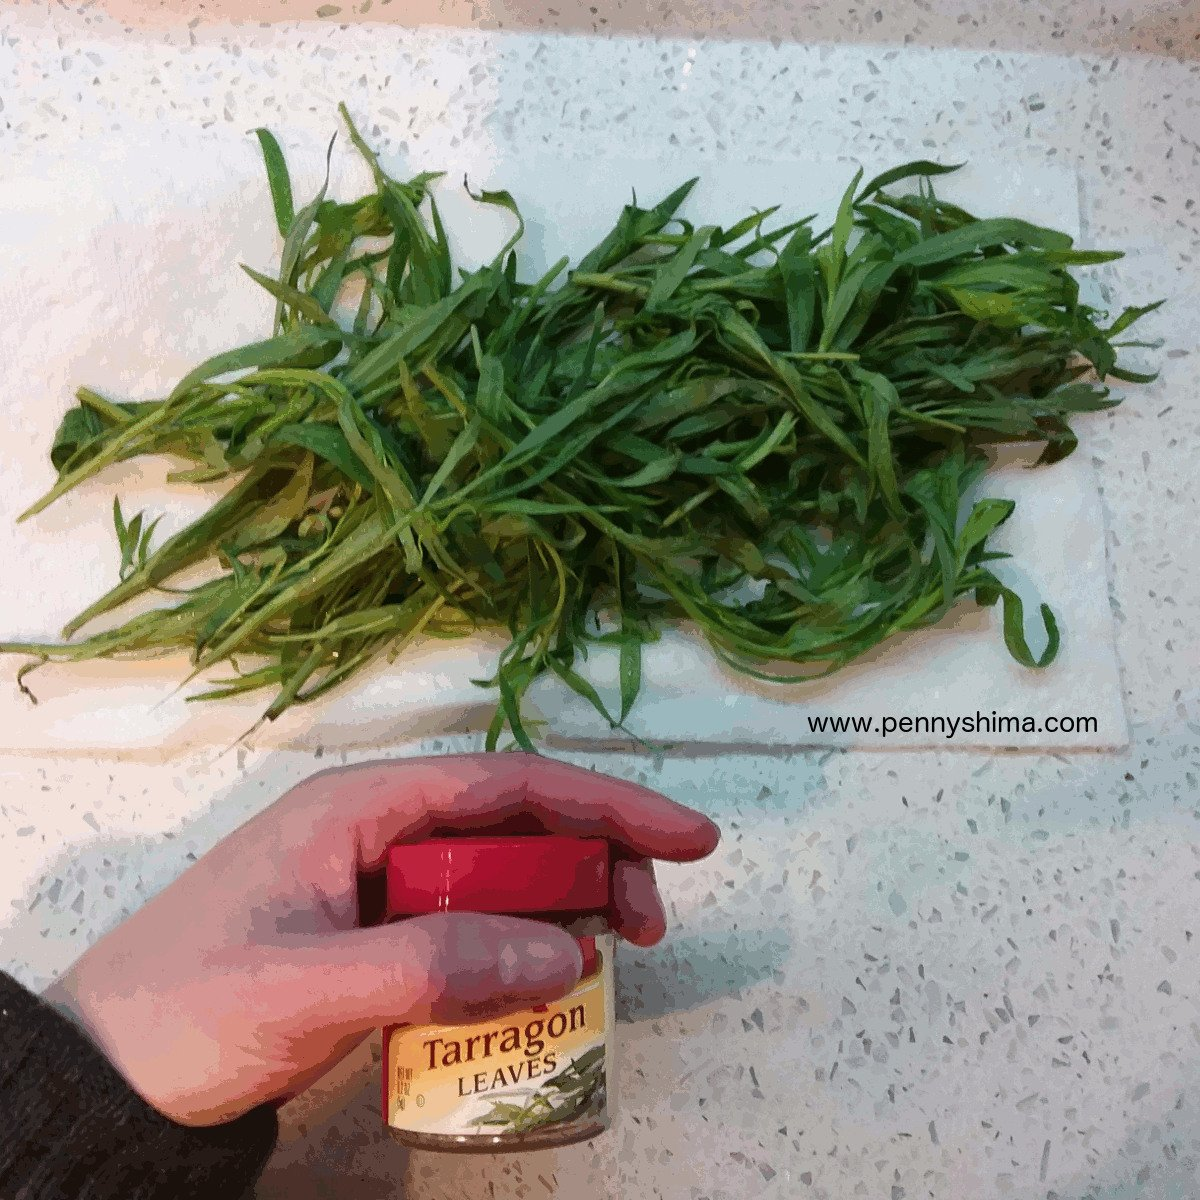 img of fresh tarragon on paper towel and store bought container of tarragon